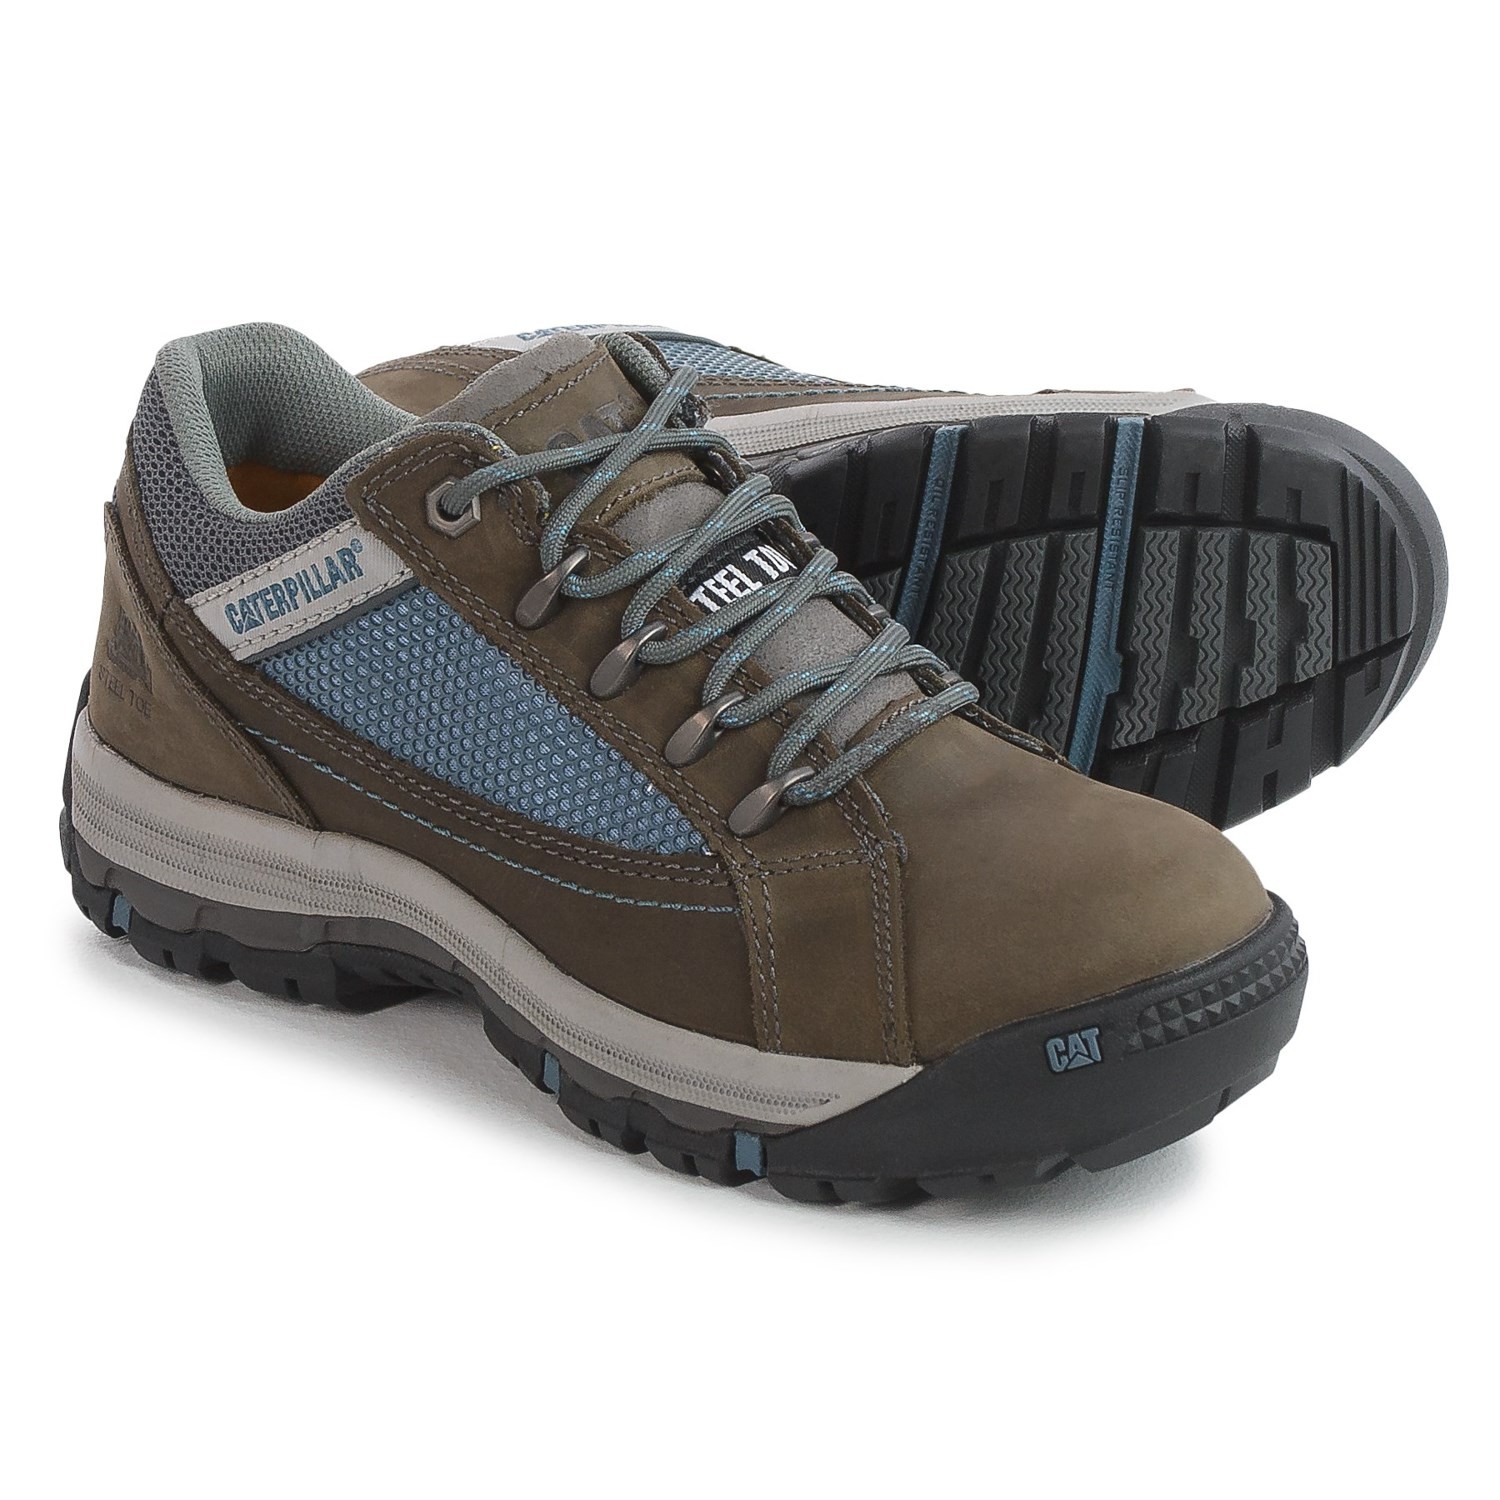 Caterpillar Champ Work Shoes (For Women) - Save 44%